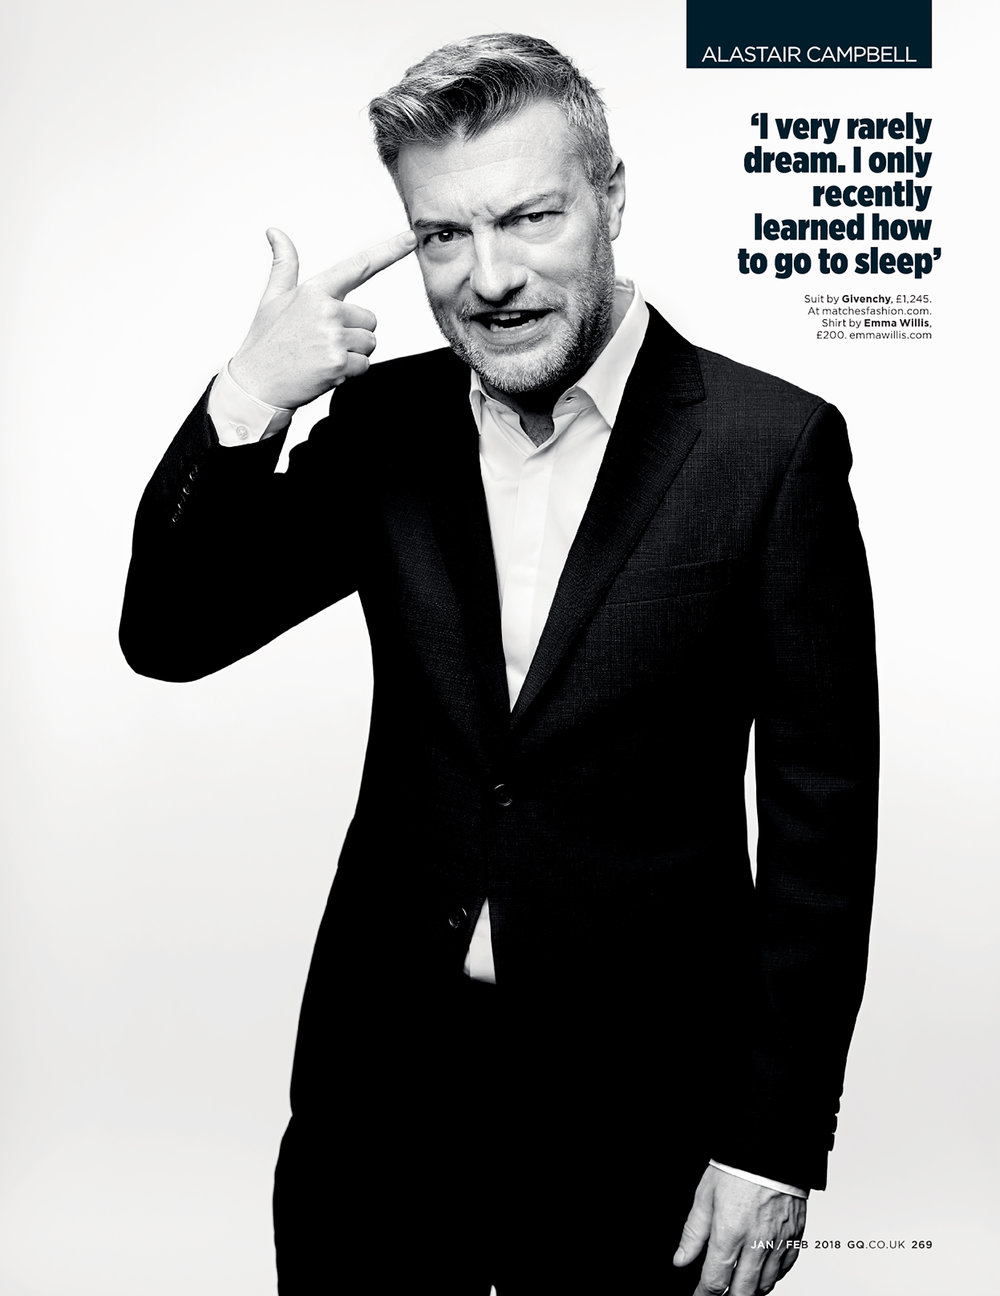 charlie brooker low res single.jpg